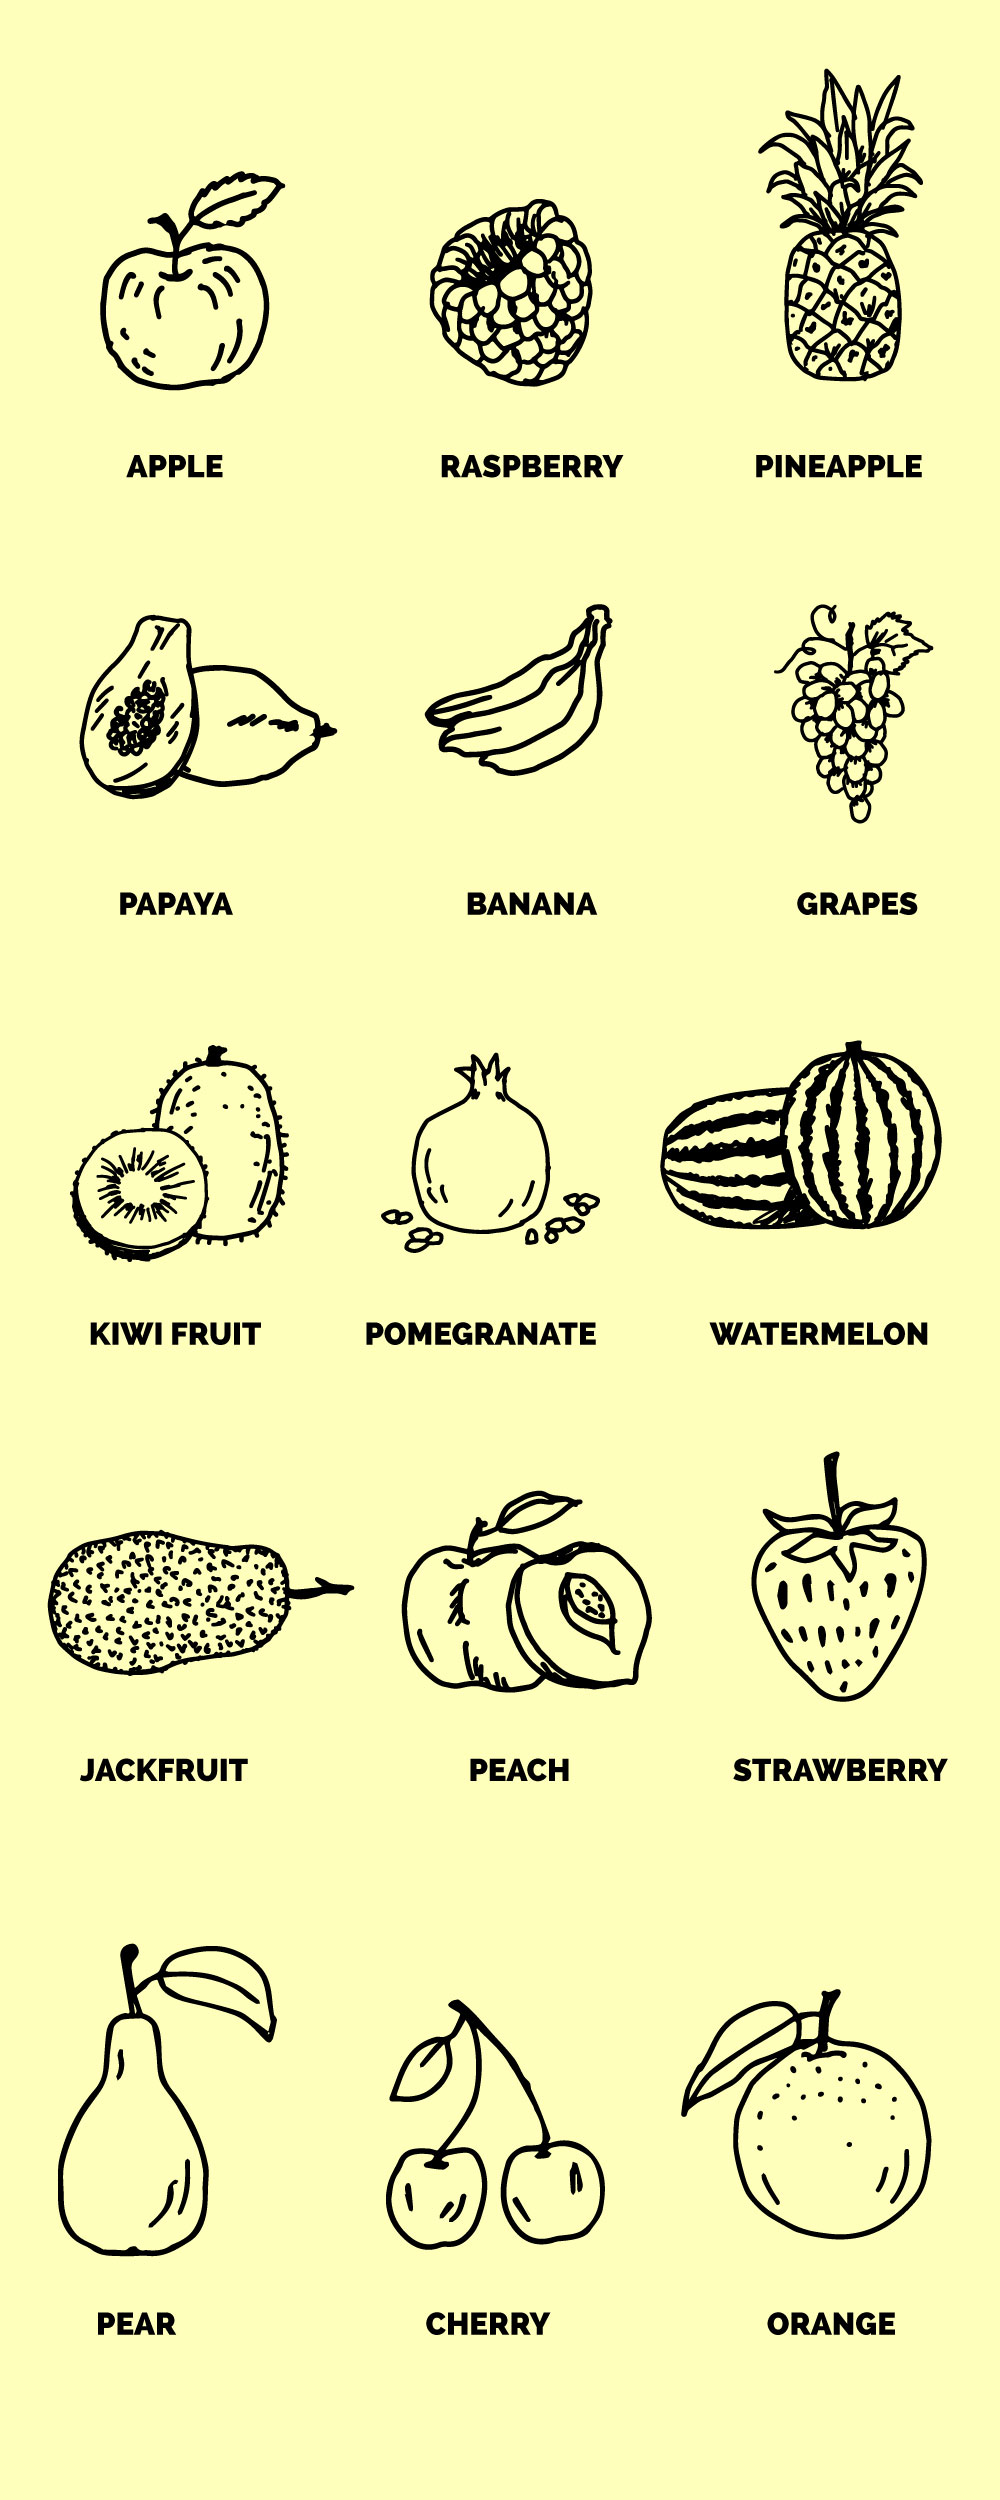 http://www.graphicsfuel.com/wp-content/uploads/2015/09/hand-drawn-vector-fruits-elements.jpg